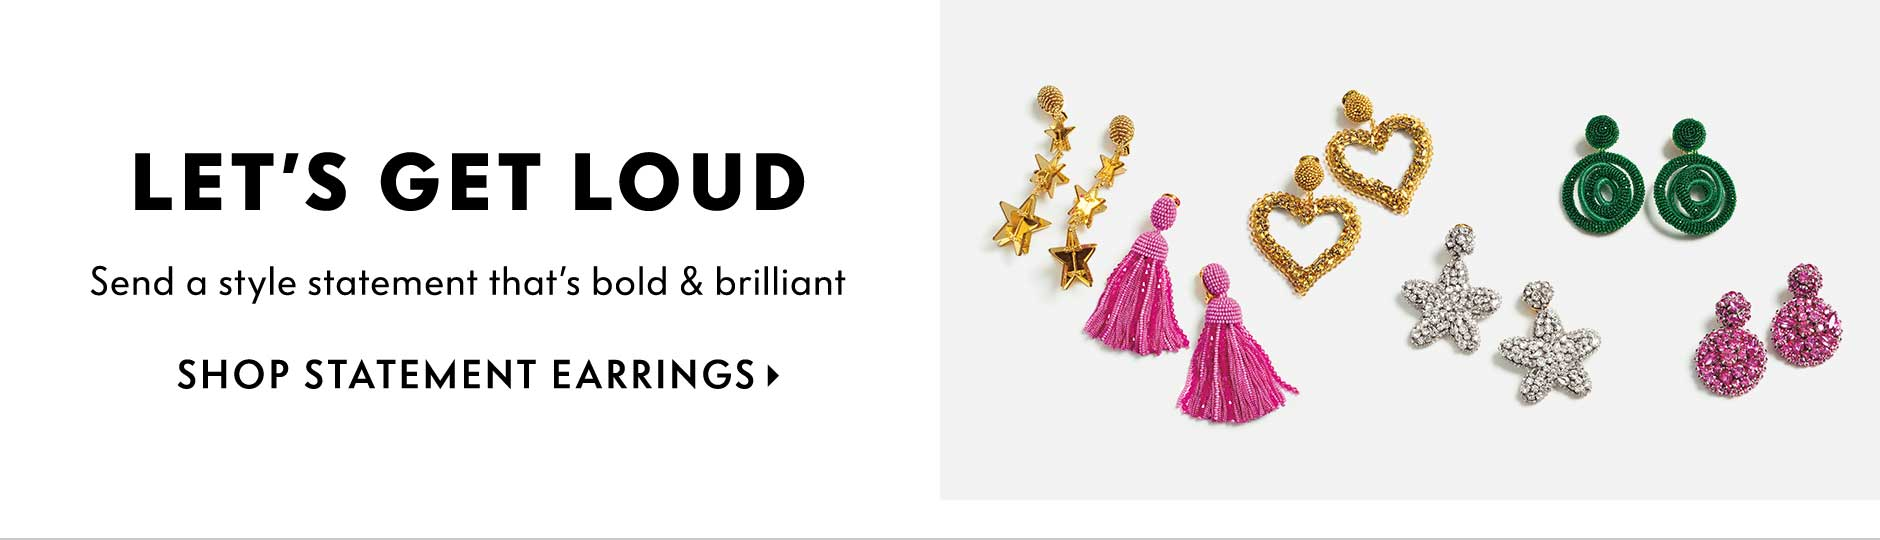 Let's Get Loud - Send a style statement that???s bold & brilliant